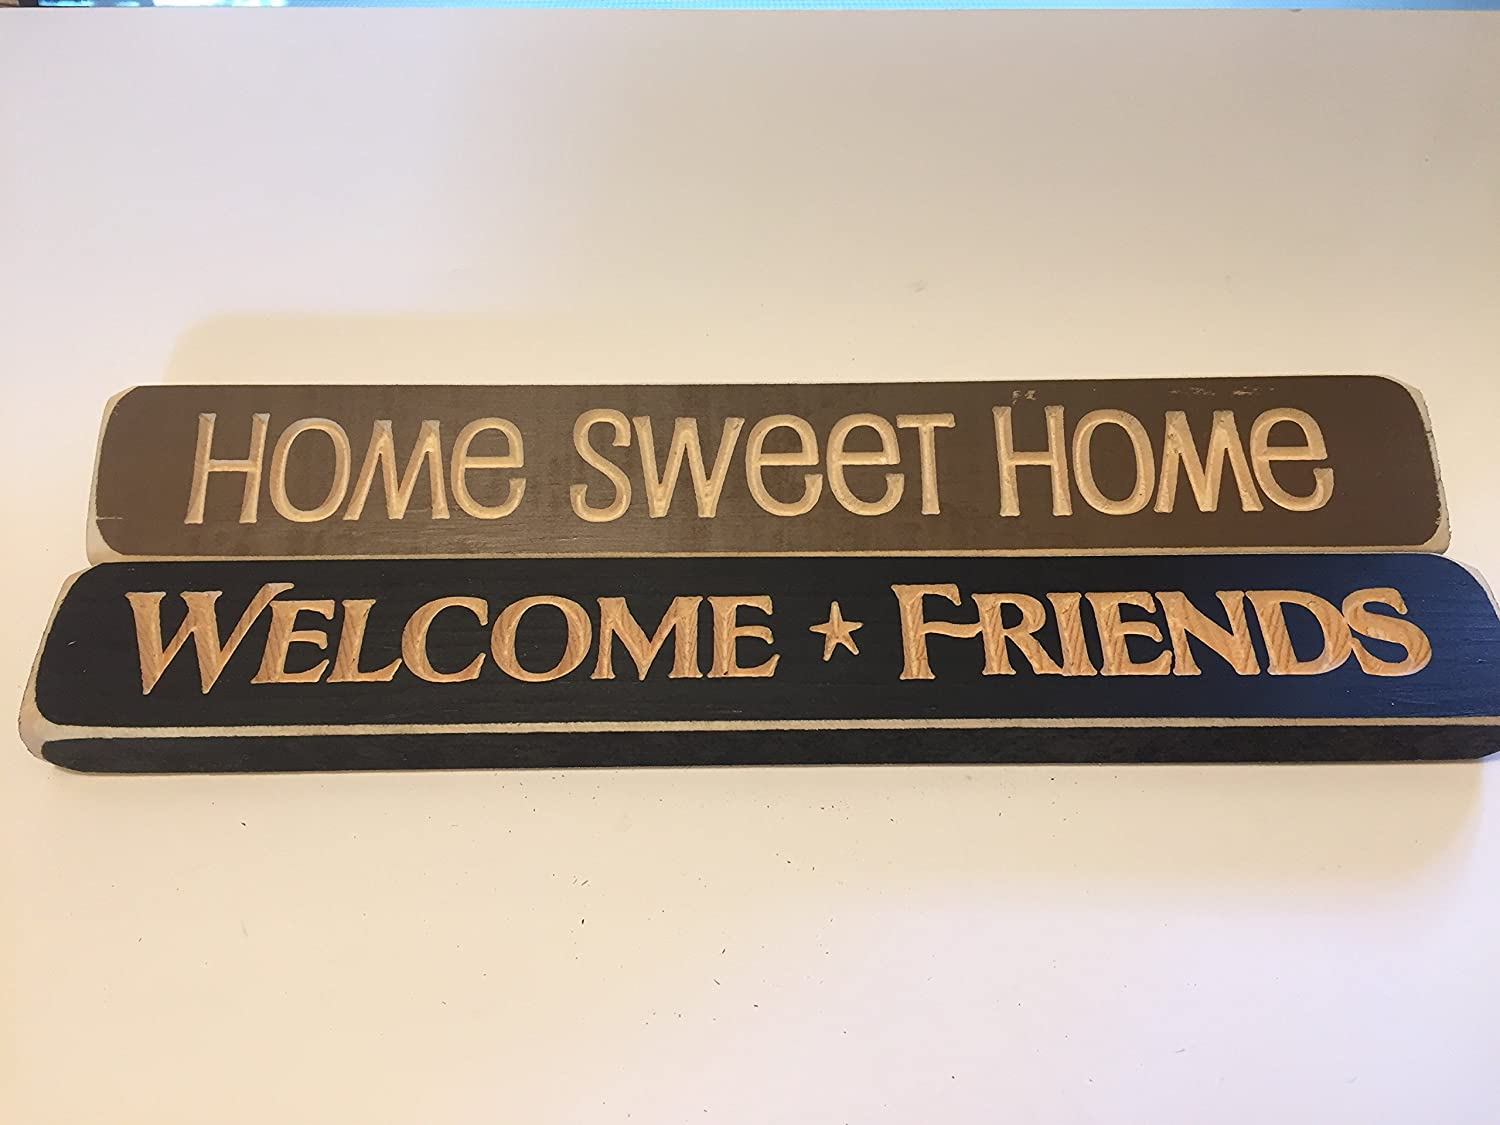 You Are The Difference LLC Inspirational Quote Decorative Engraved Wood Block Signs Home Sweet Welcome Friends Set Of 2 Made In USA 12 X 1